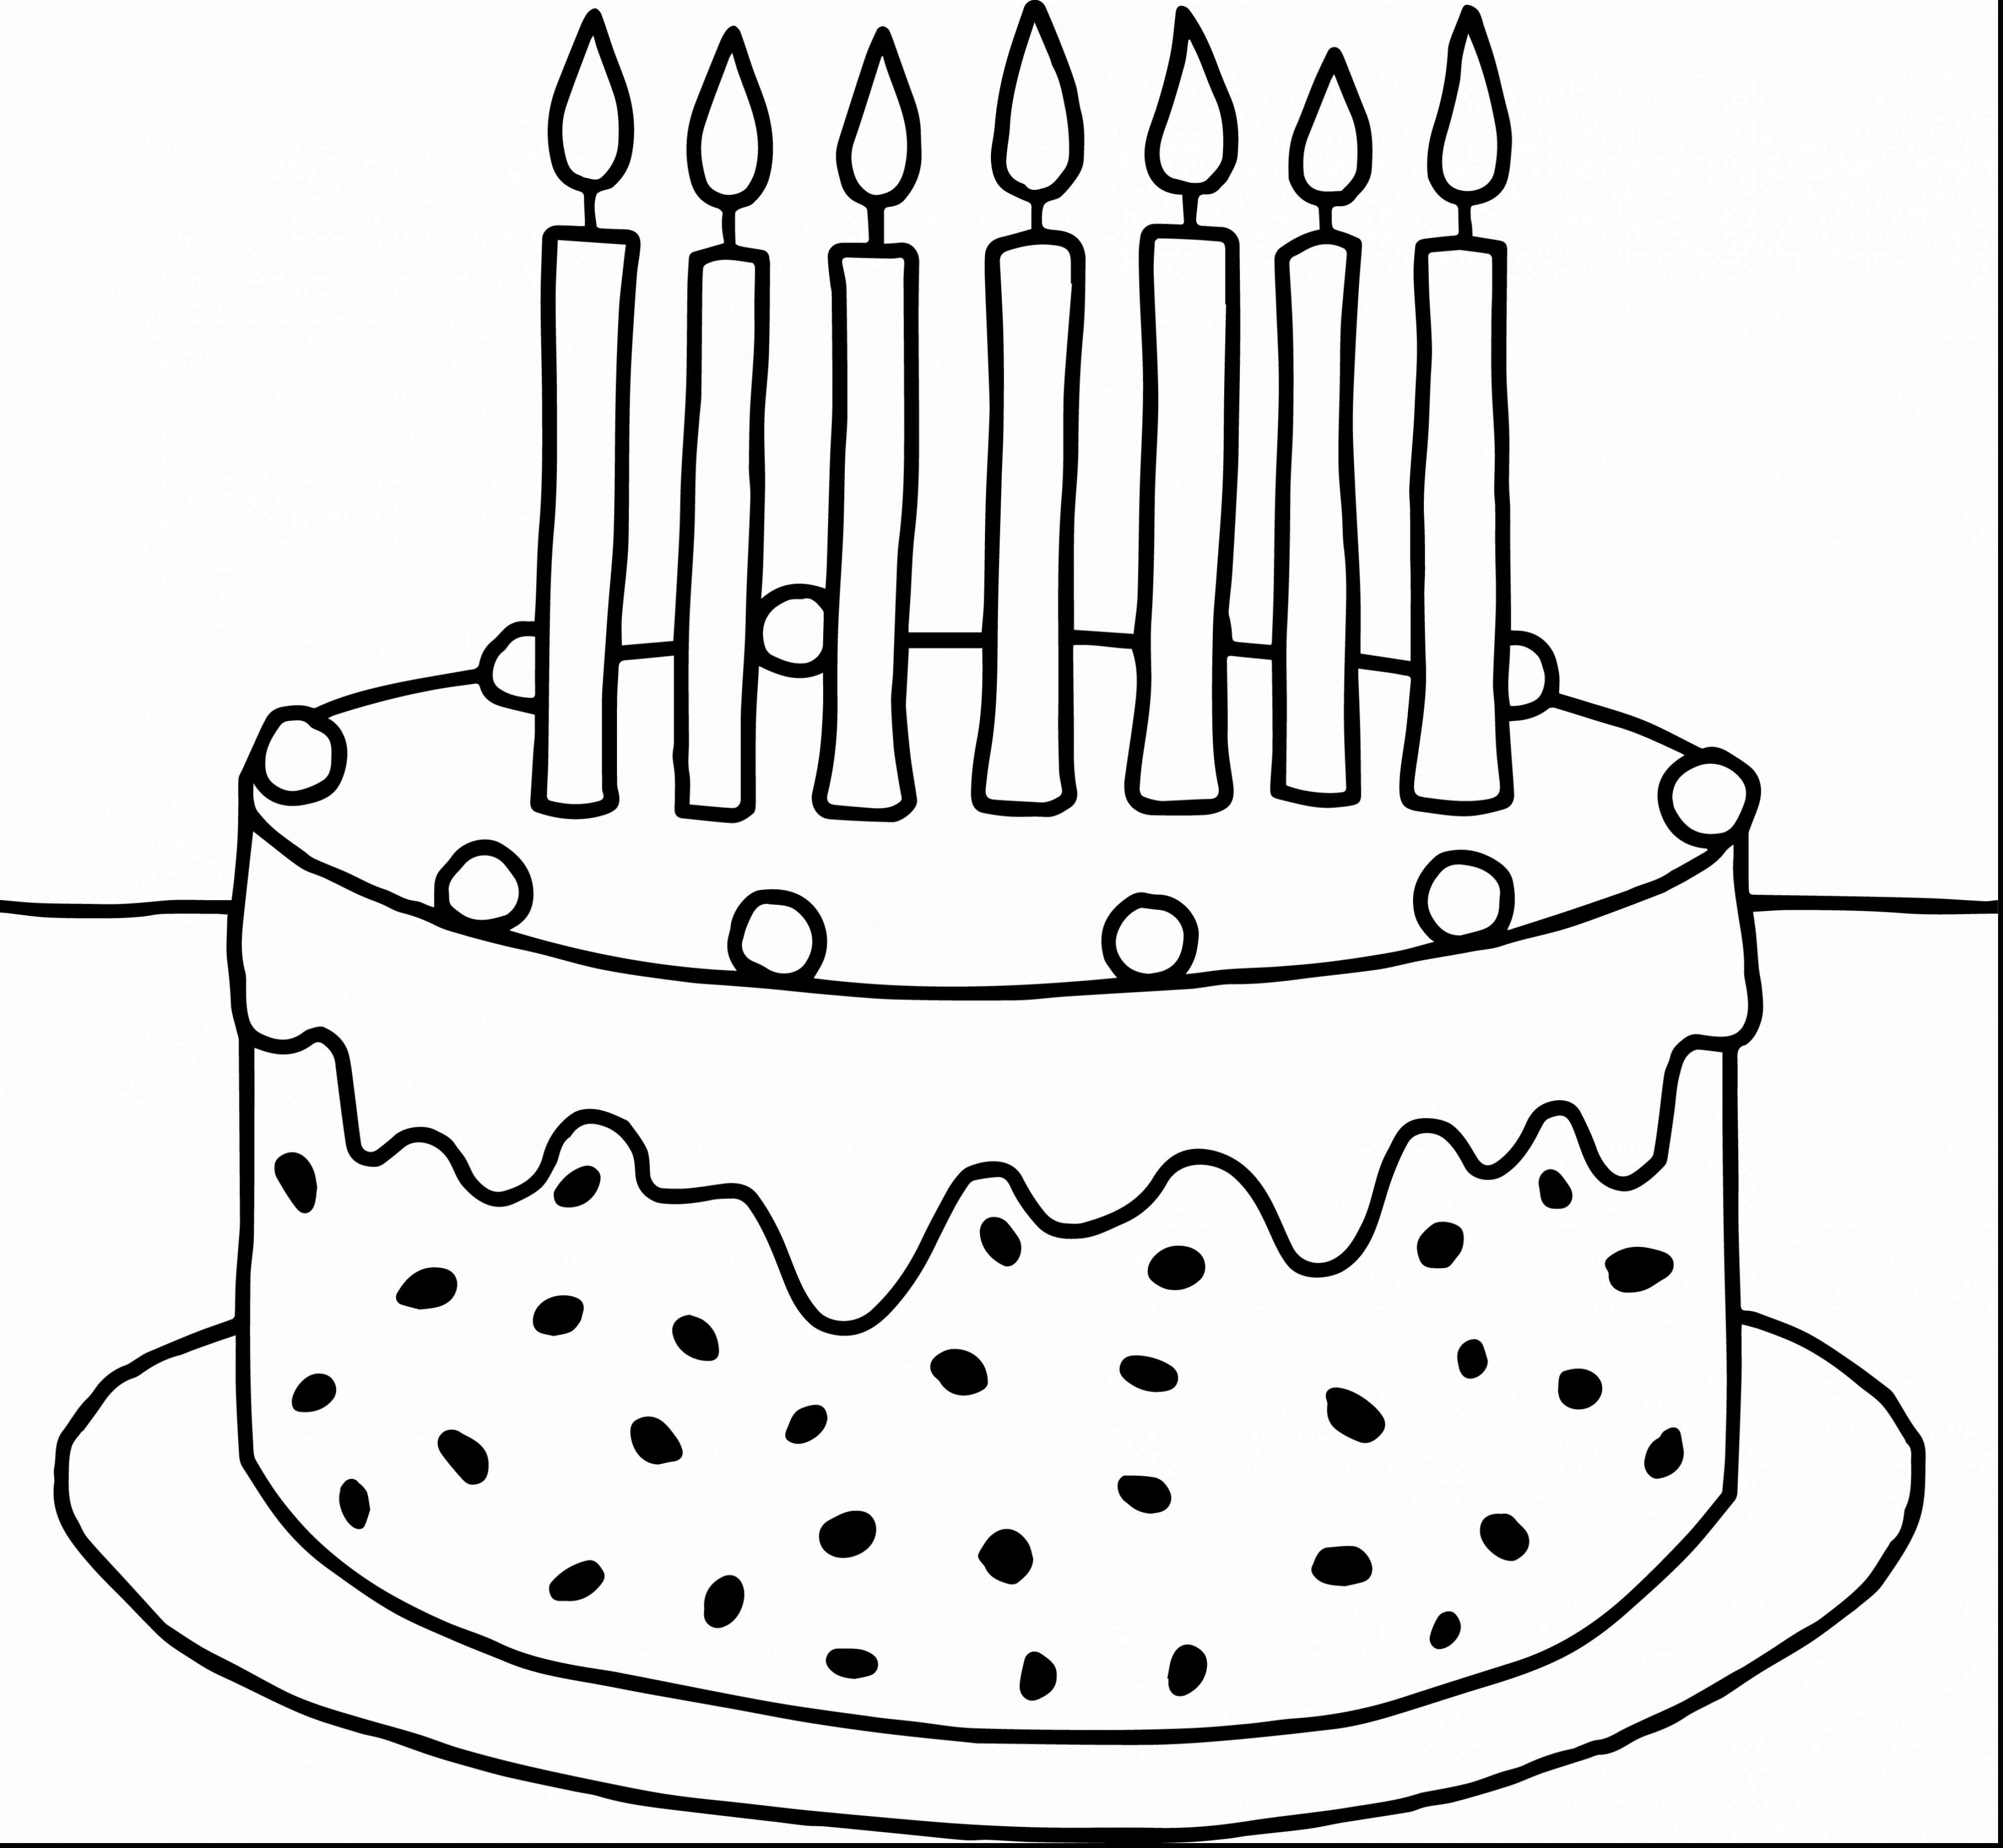 birthday cake for coloring ; extraordinary-birthday-cake-coloring-pages-preschool-with-birthday-cake-coloring-page-and-small-birthday-cake-coloring-page